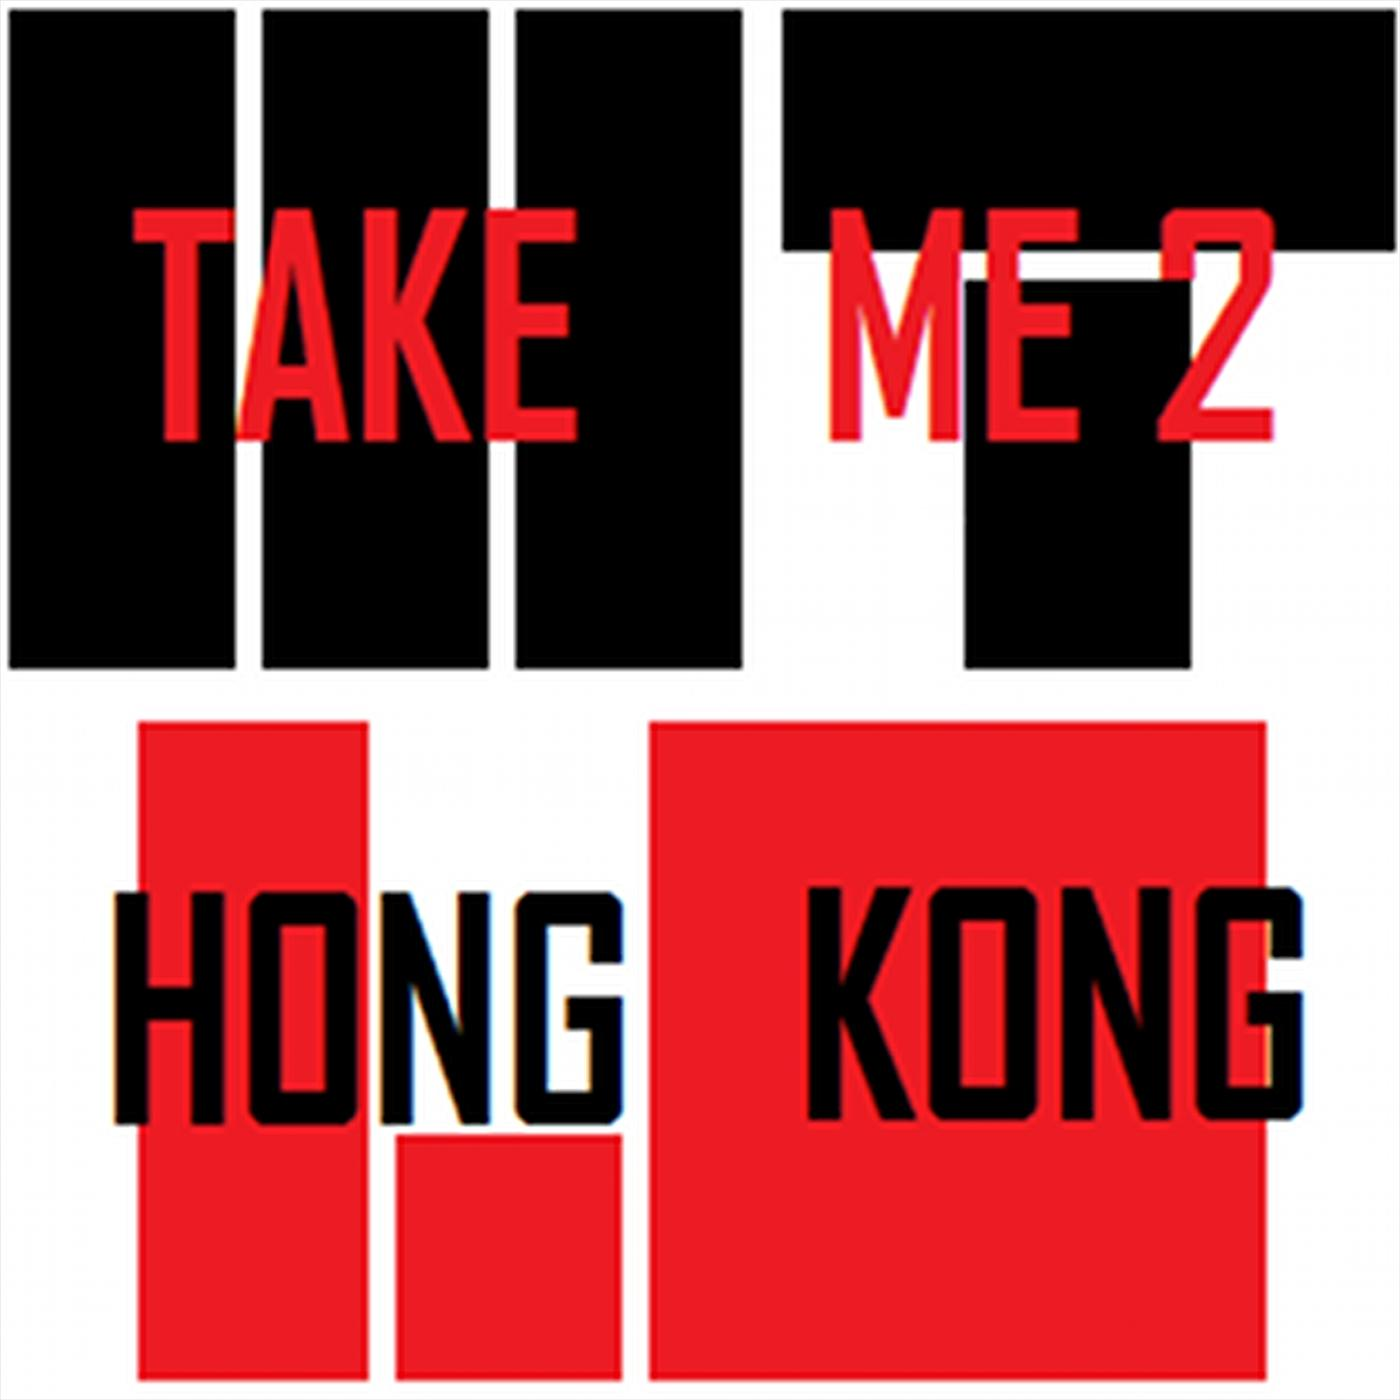 Take me to Hong Kong